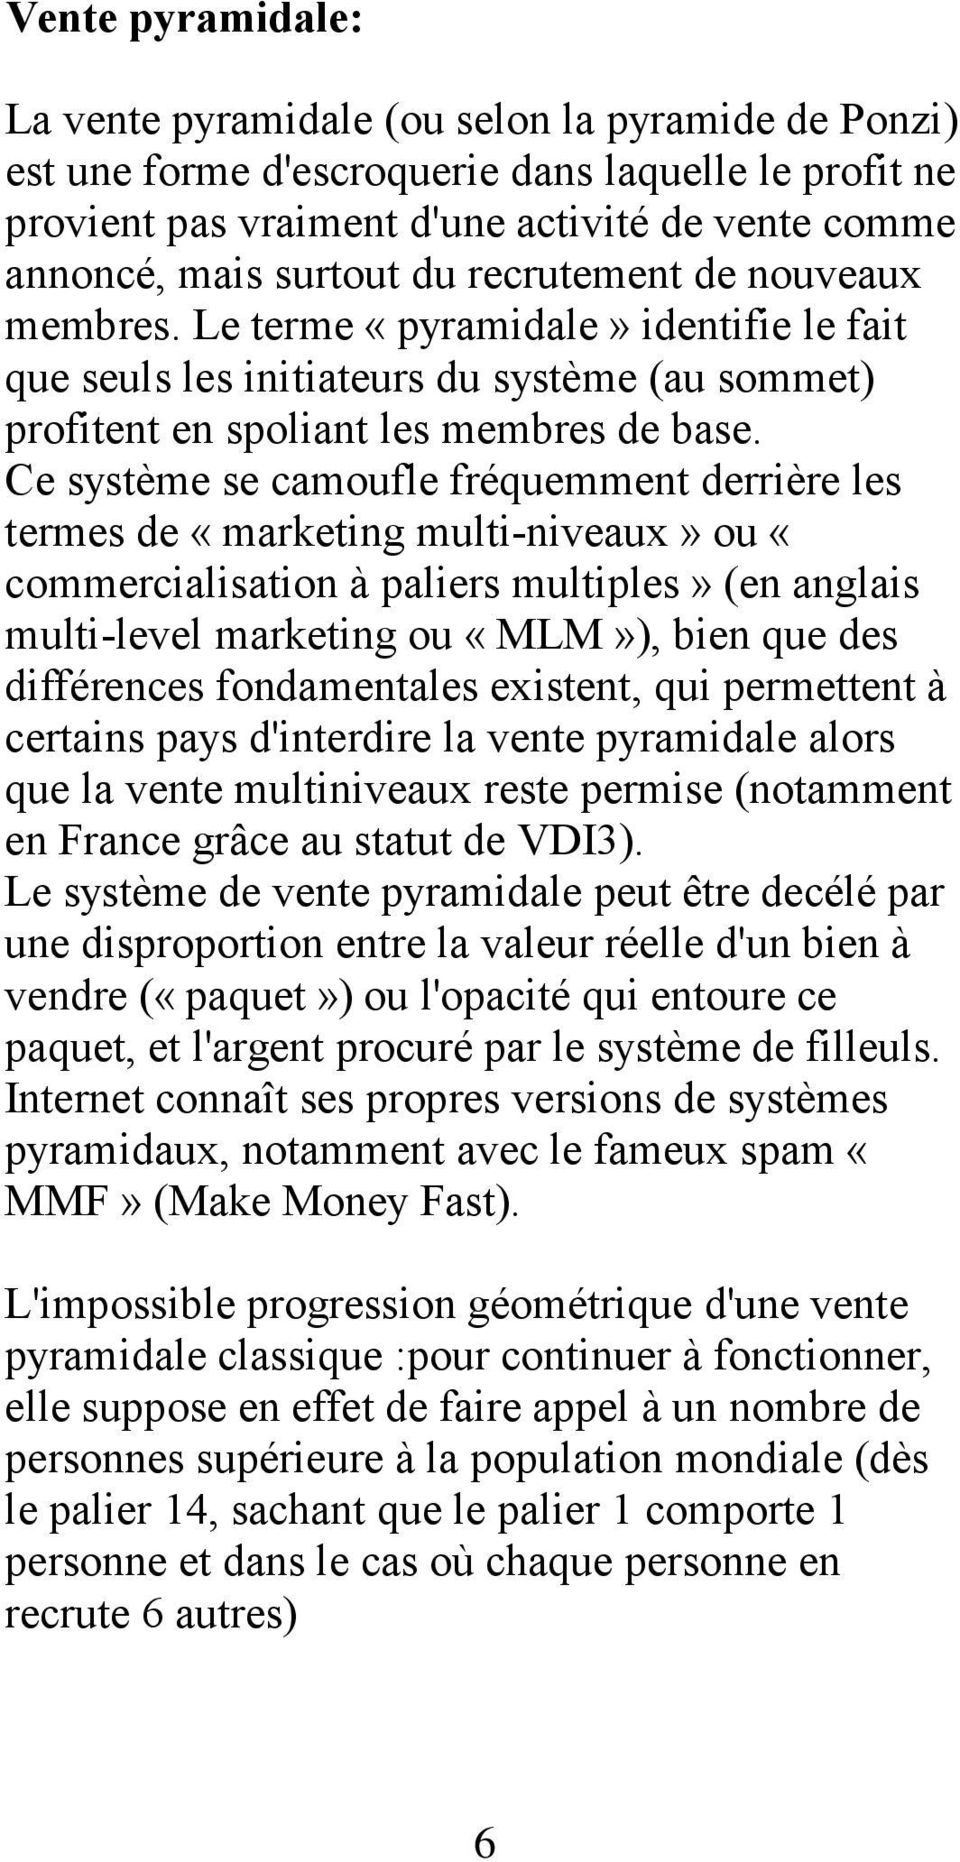 Ce système se camoufle fréquemment derrière les termes de «marketing multi-niveaux» ou «commercialisation à paliers multiples» (en anglais multi-level marketing ou «MLM»), bien que des différences